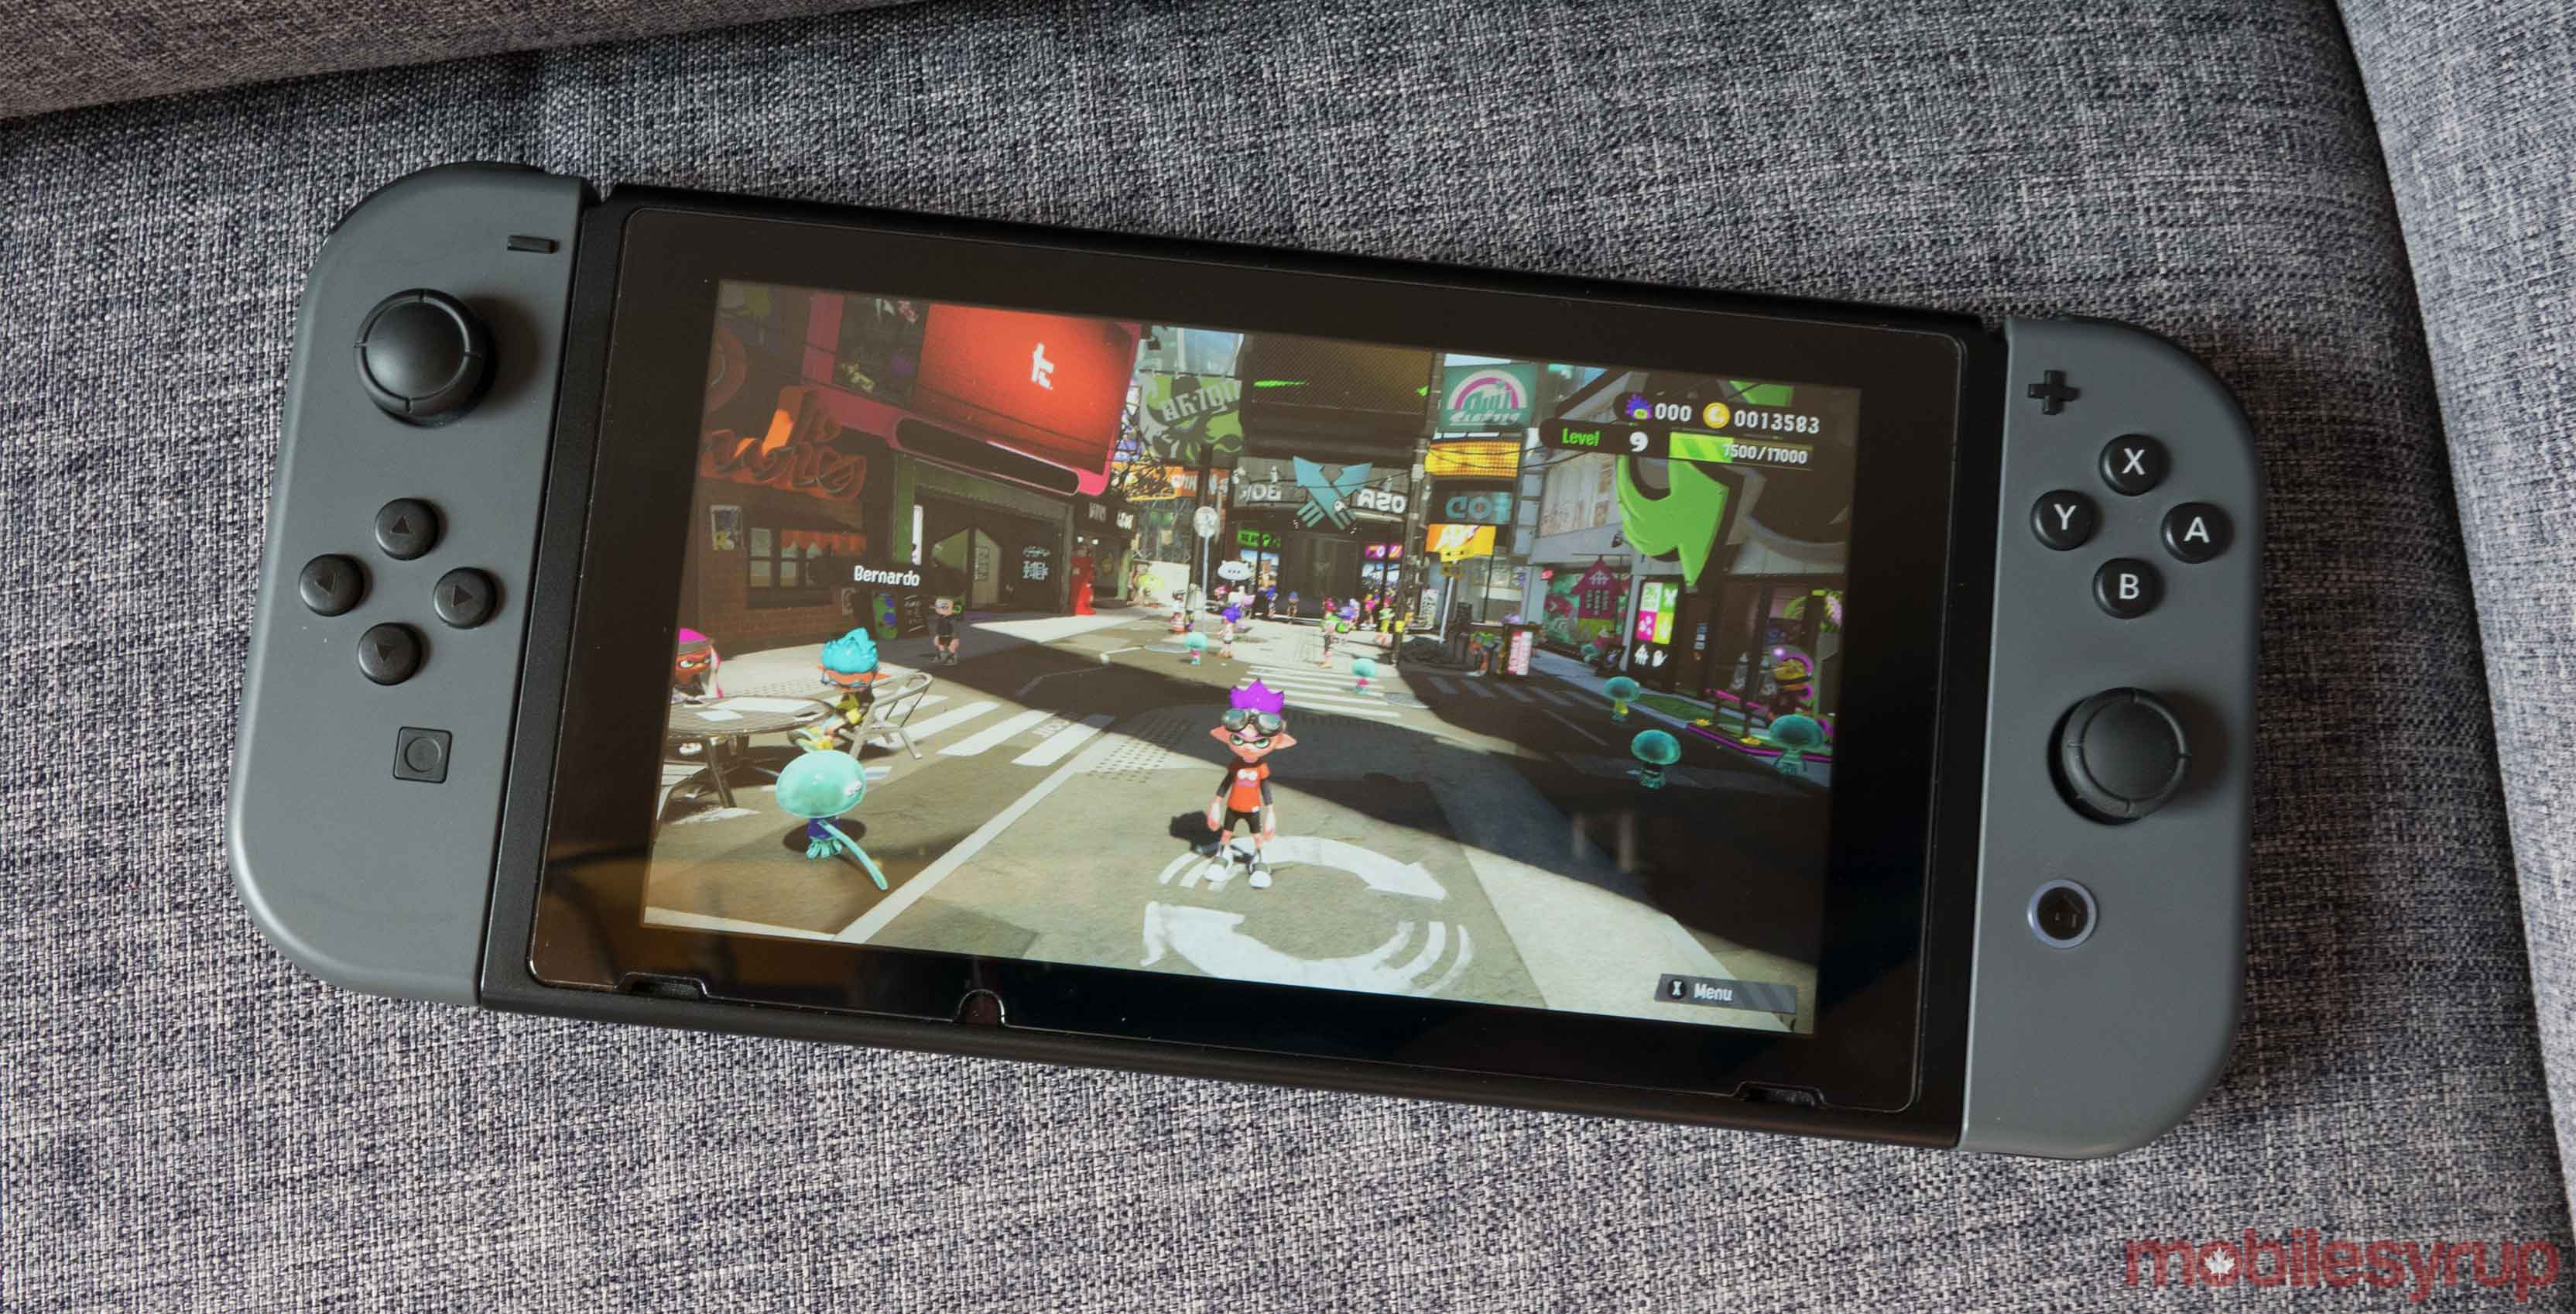 Nintendo Switch with Splatoon 2